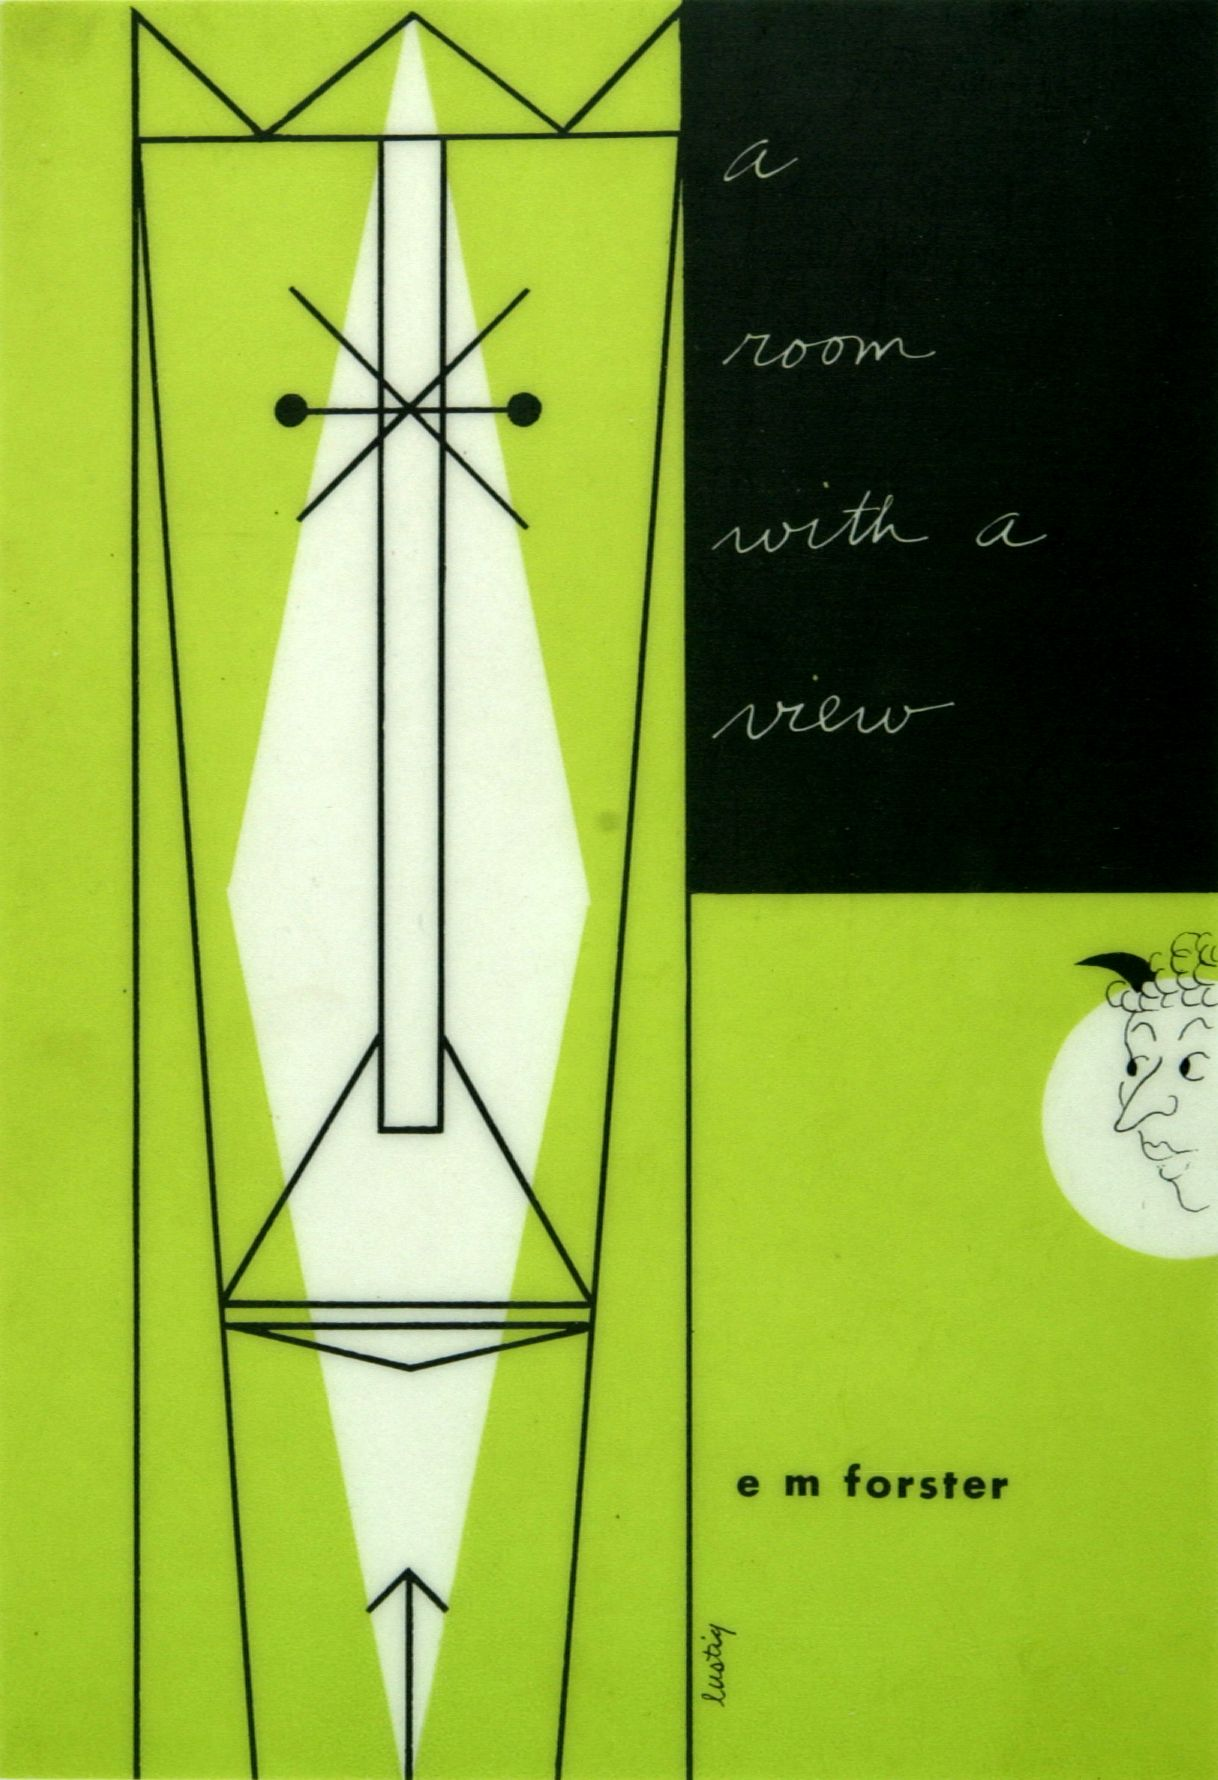 A Room With A view, EM Forster. Book cover design by Alvin Lustig (1946)   RIT Graphic Design Archive